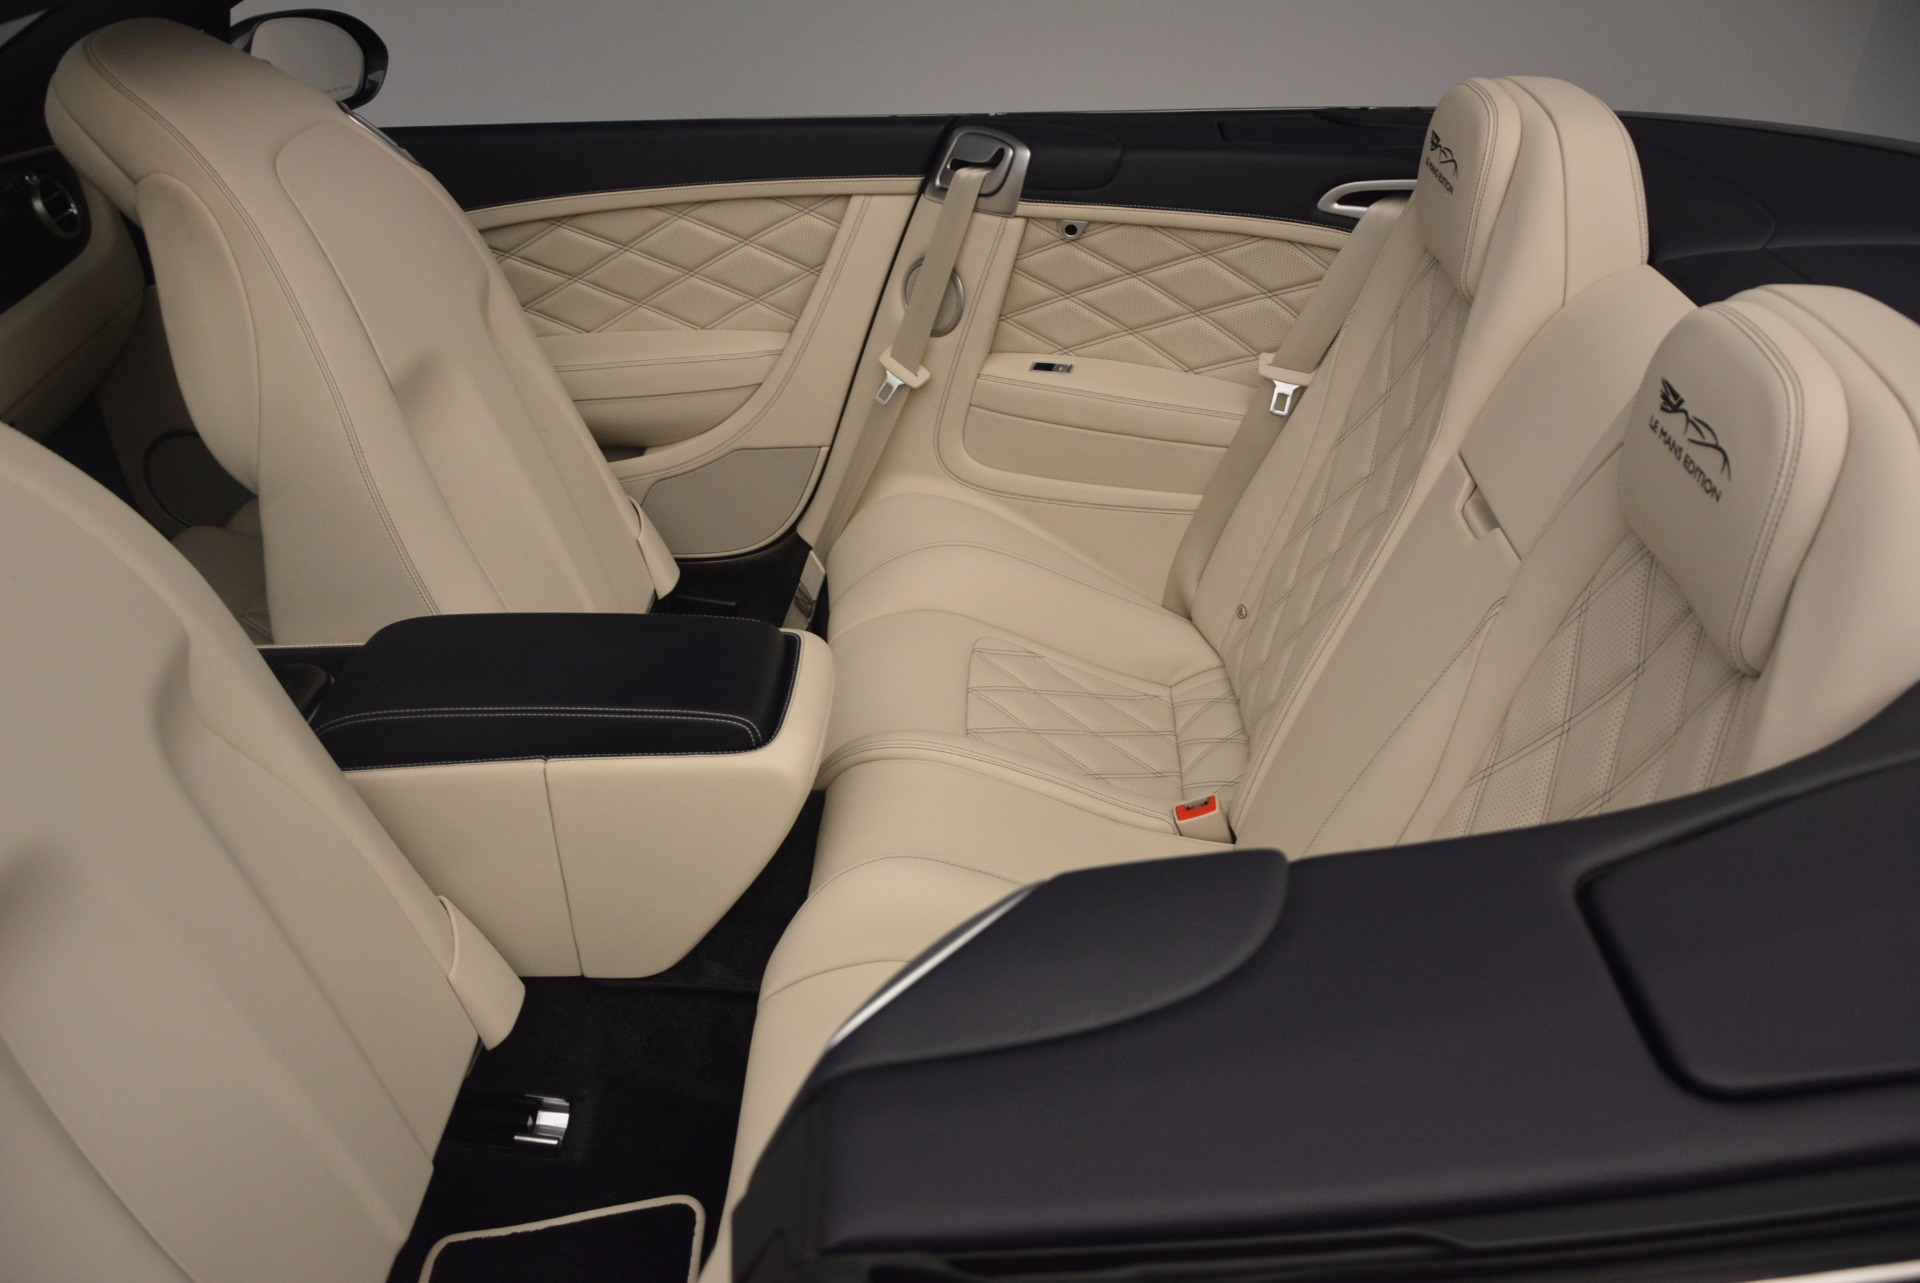 Used 2013 Bentley Continental GT V8 Le Mans Edition, 1 of 48 For Sale In Greenwich, CT 1288_p46